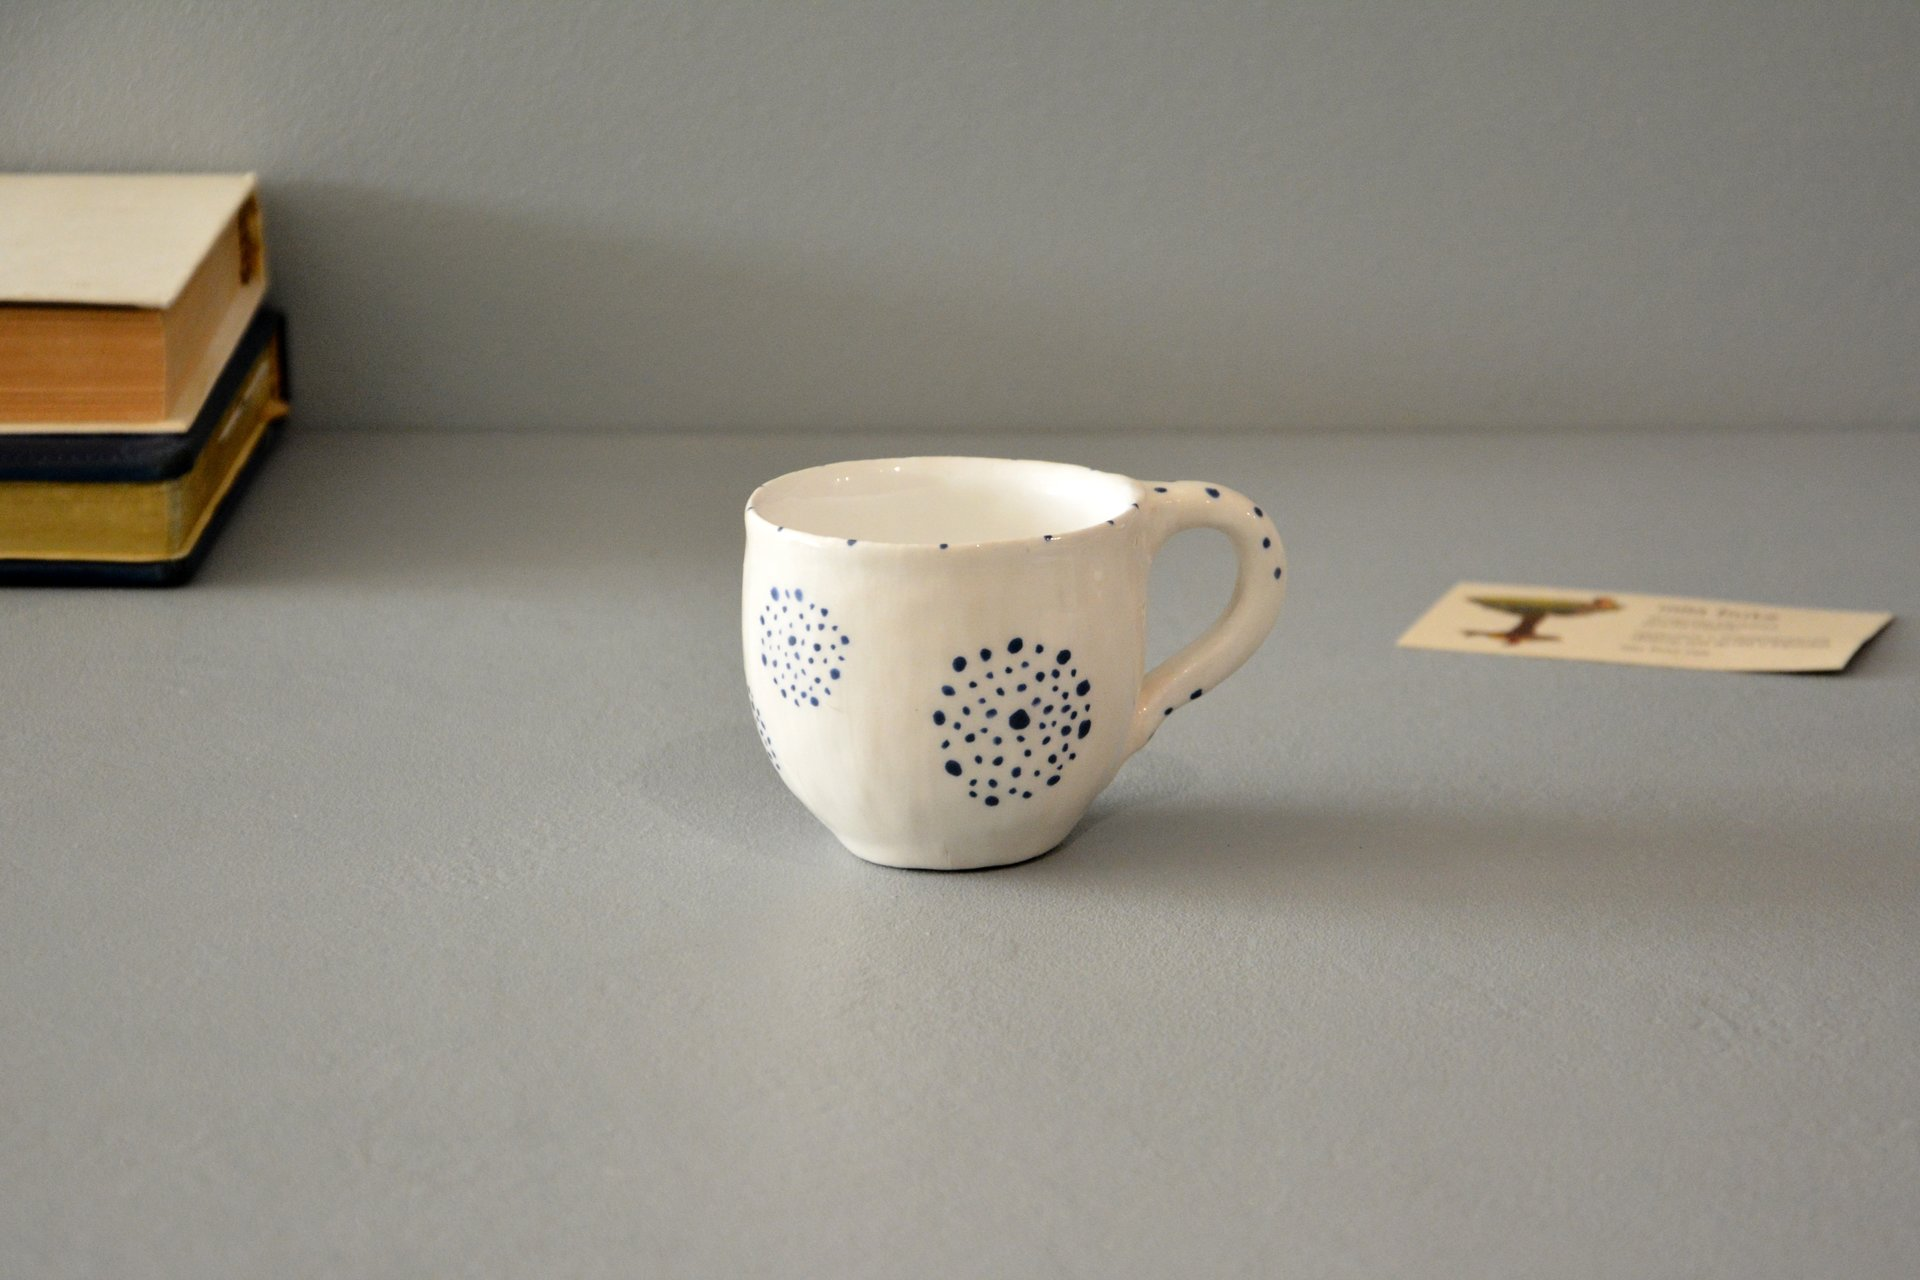 Ceramic white handmade cup for espresso, 150 ml, photo 1 of 4.